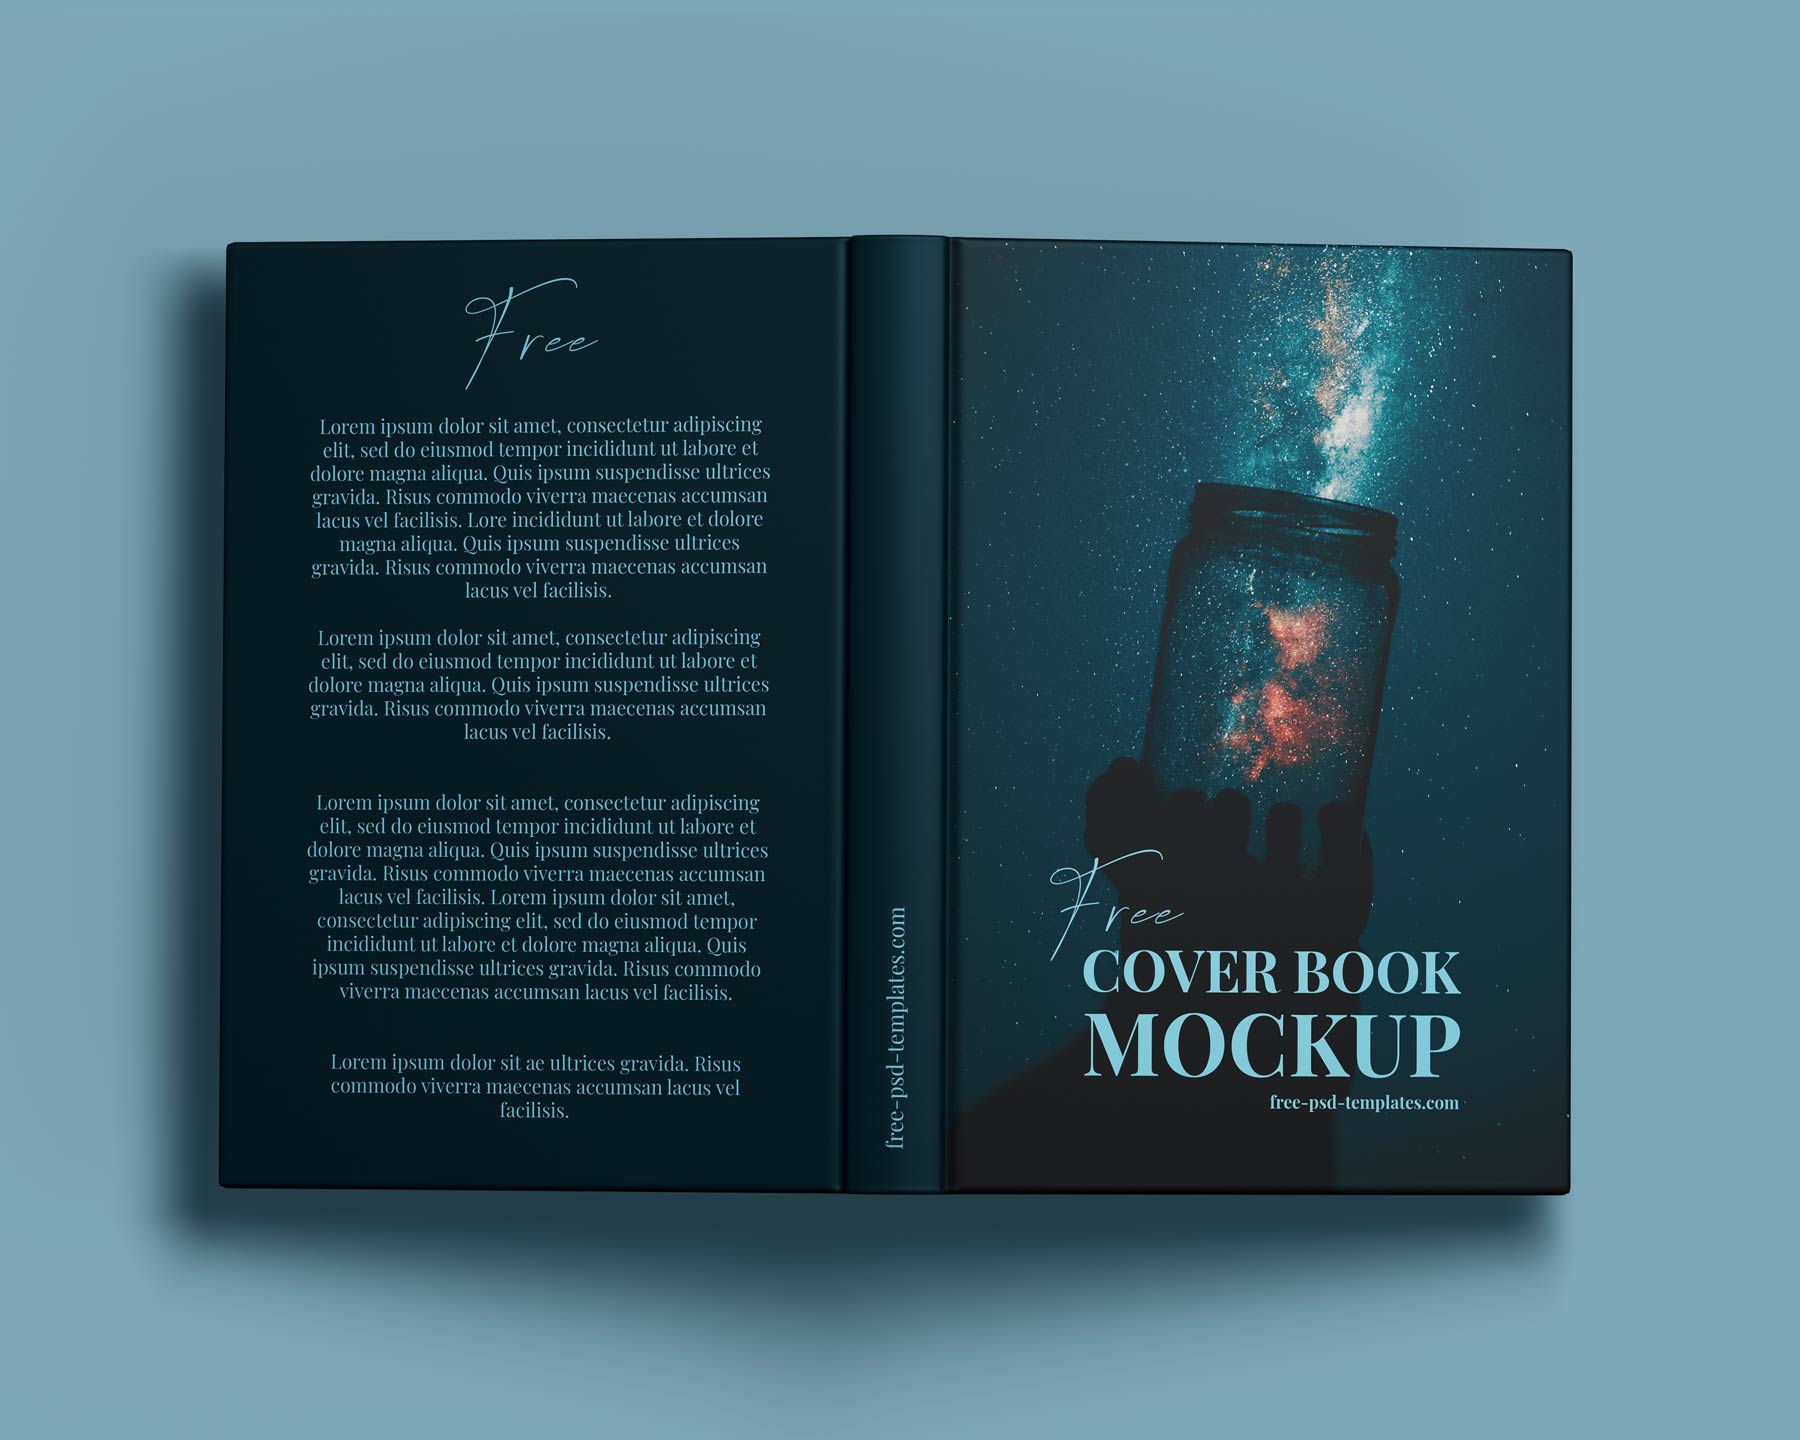 Hardcover Open Book Top view mockup